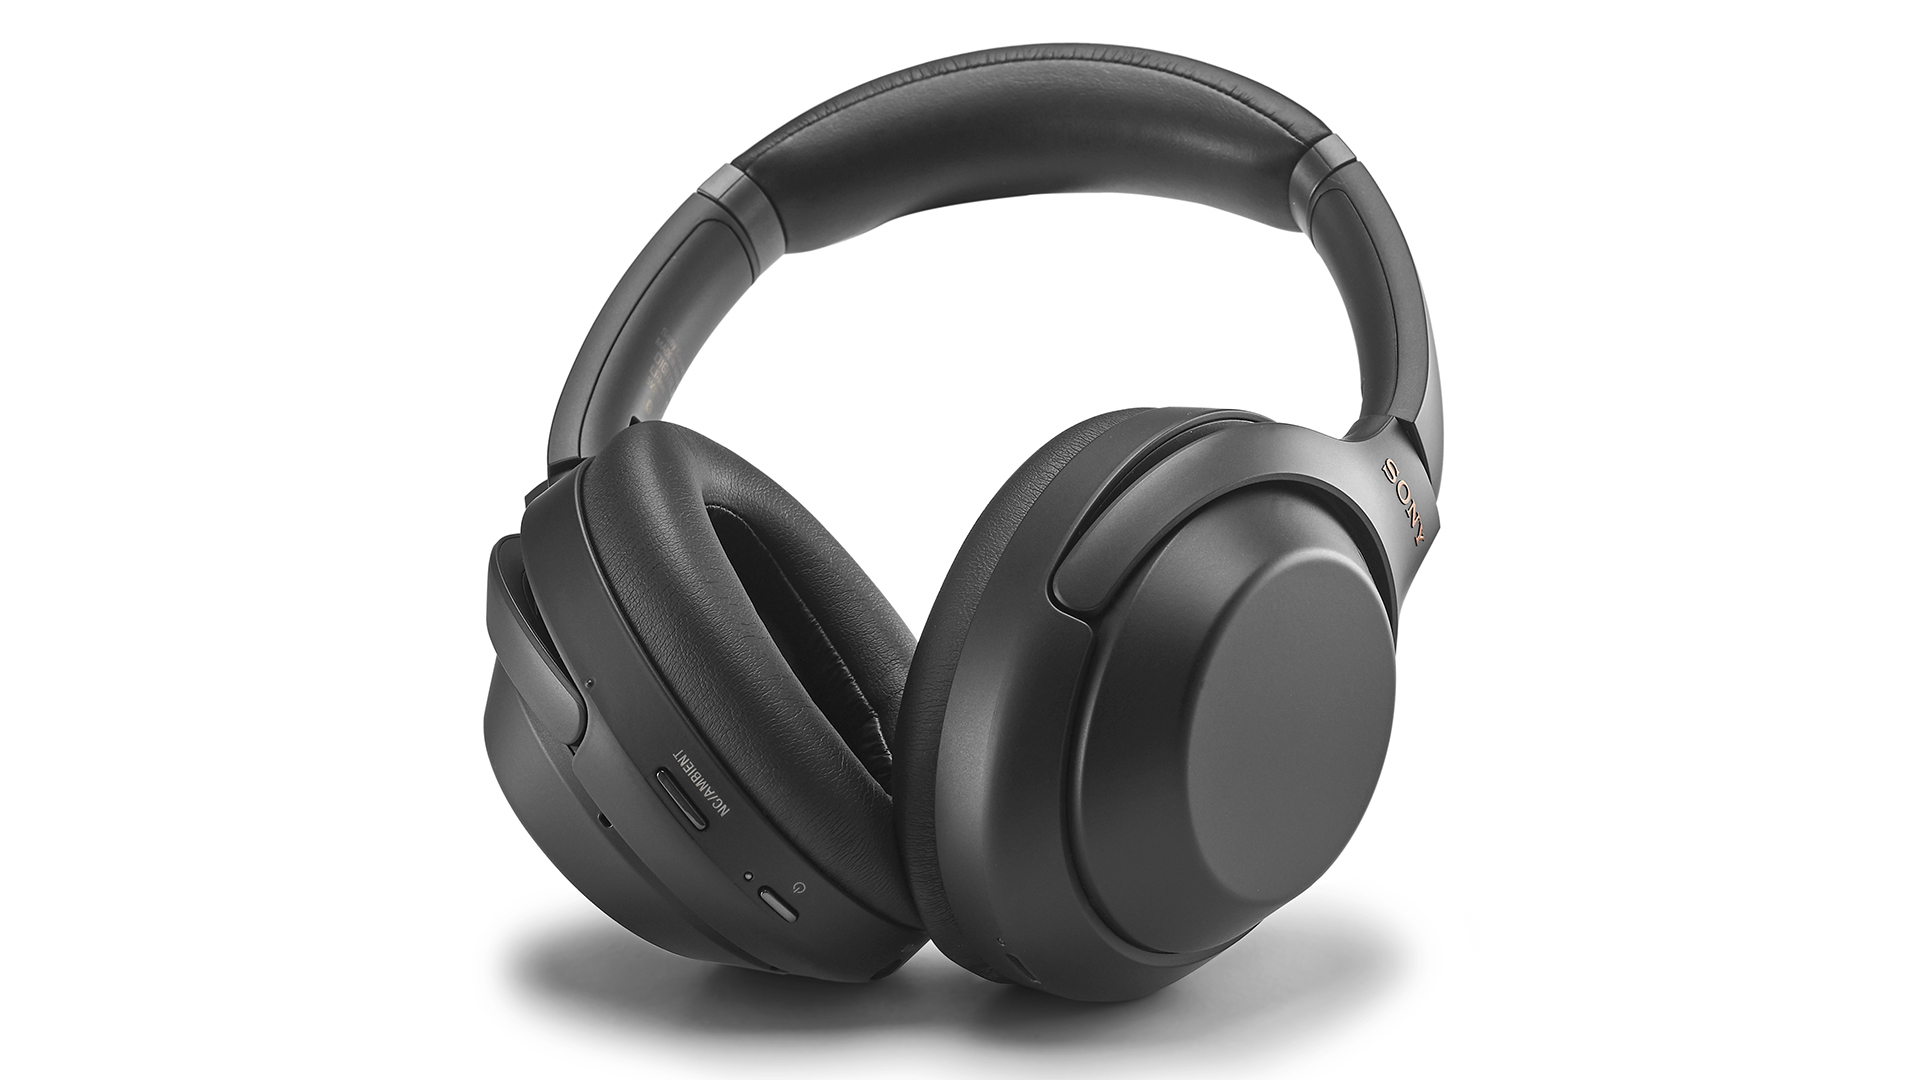 5 Best Noise Cancellation Bluetooth Headphones of 2019